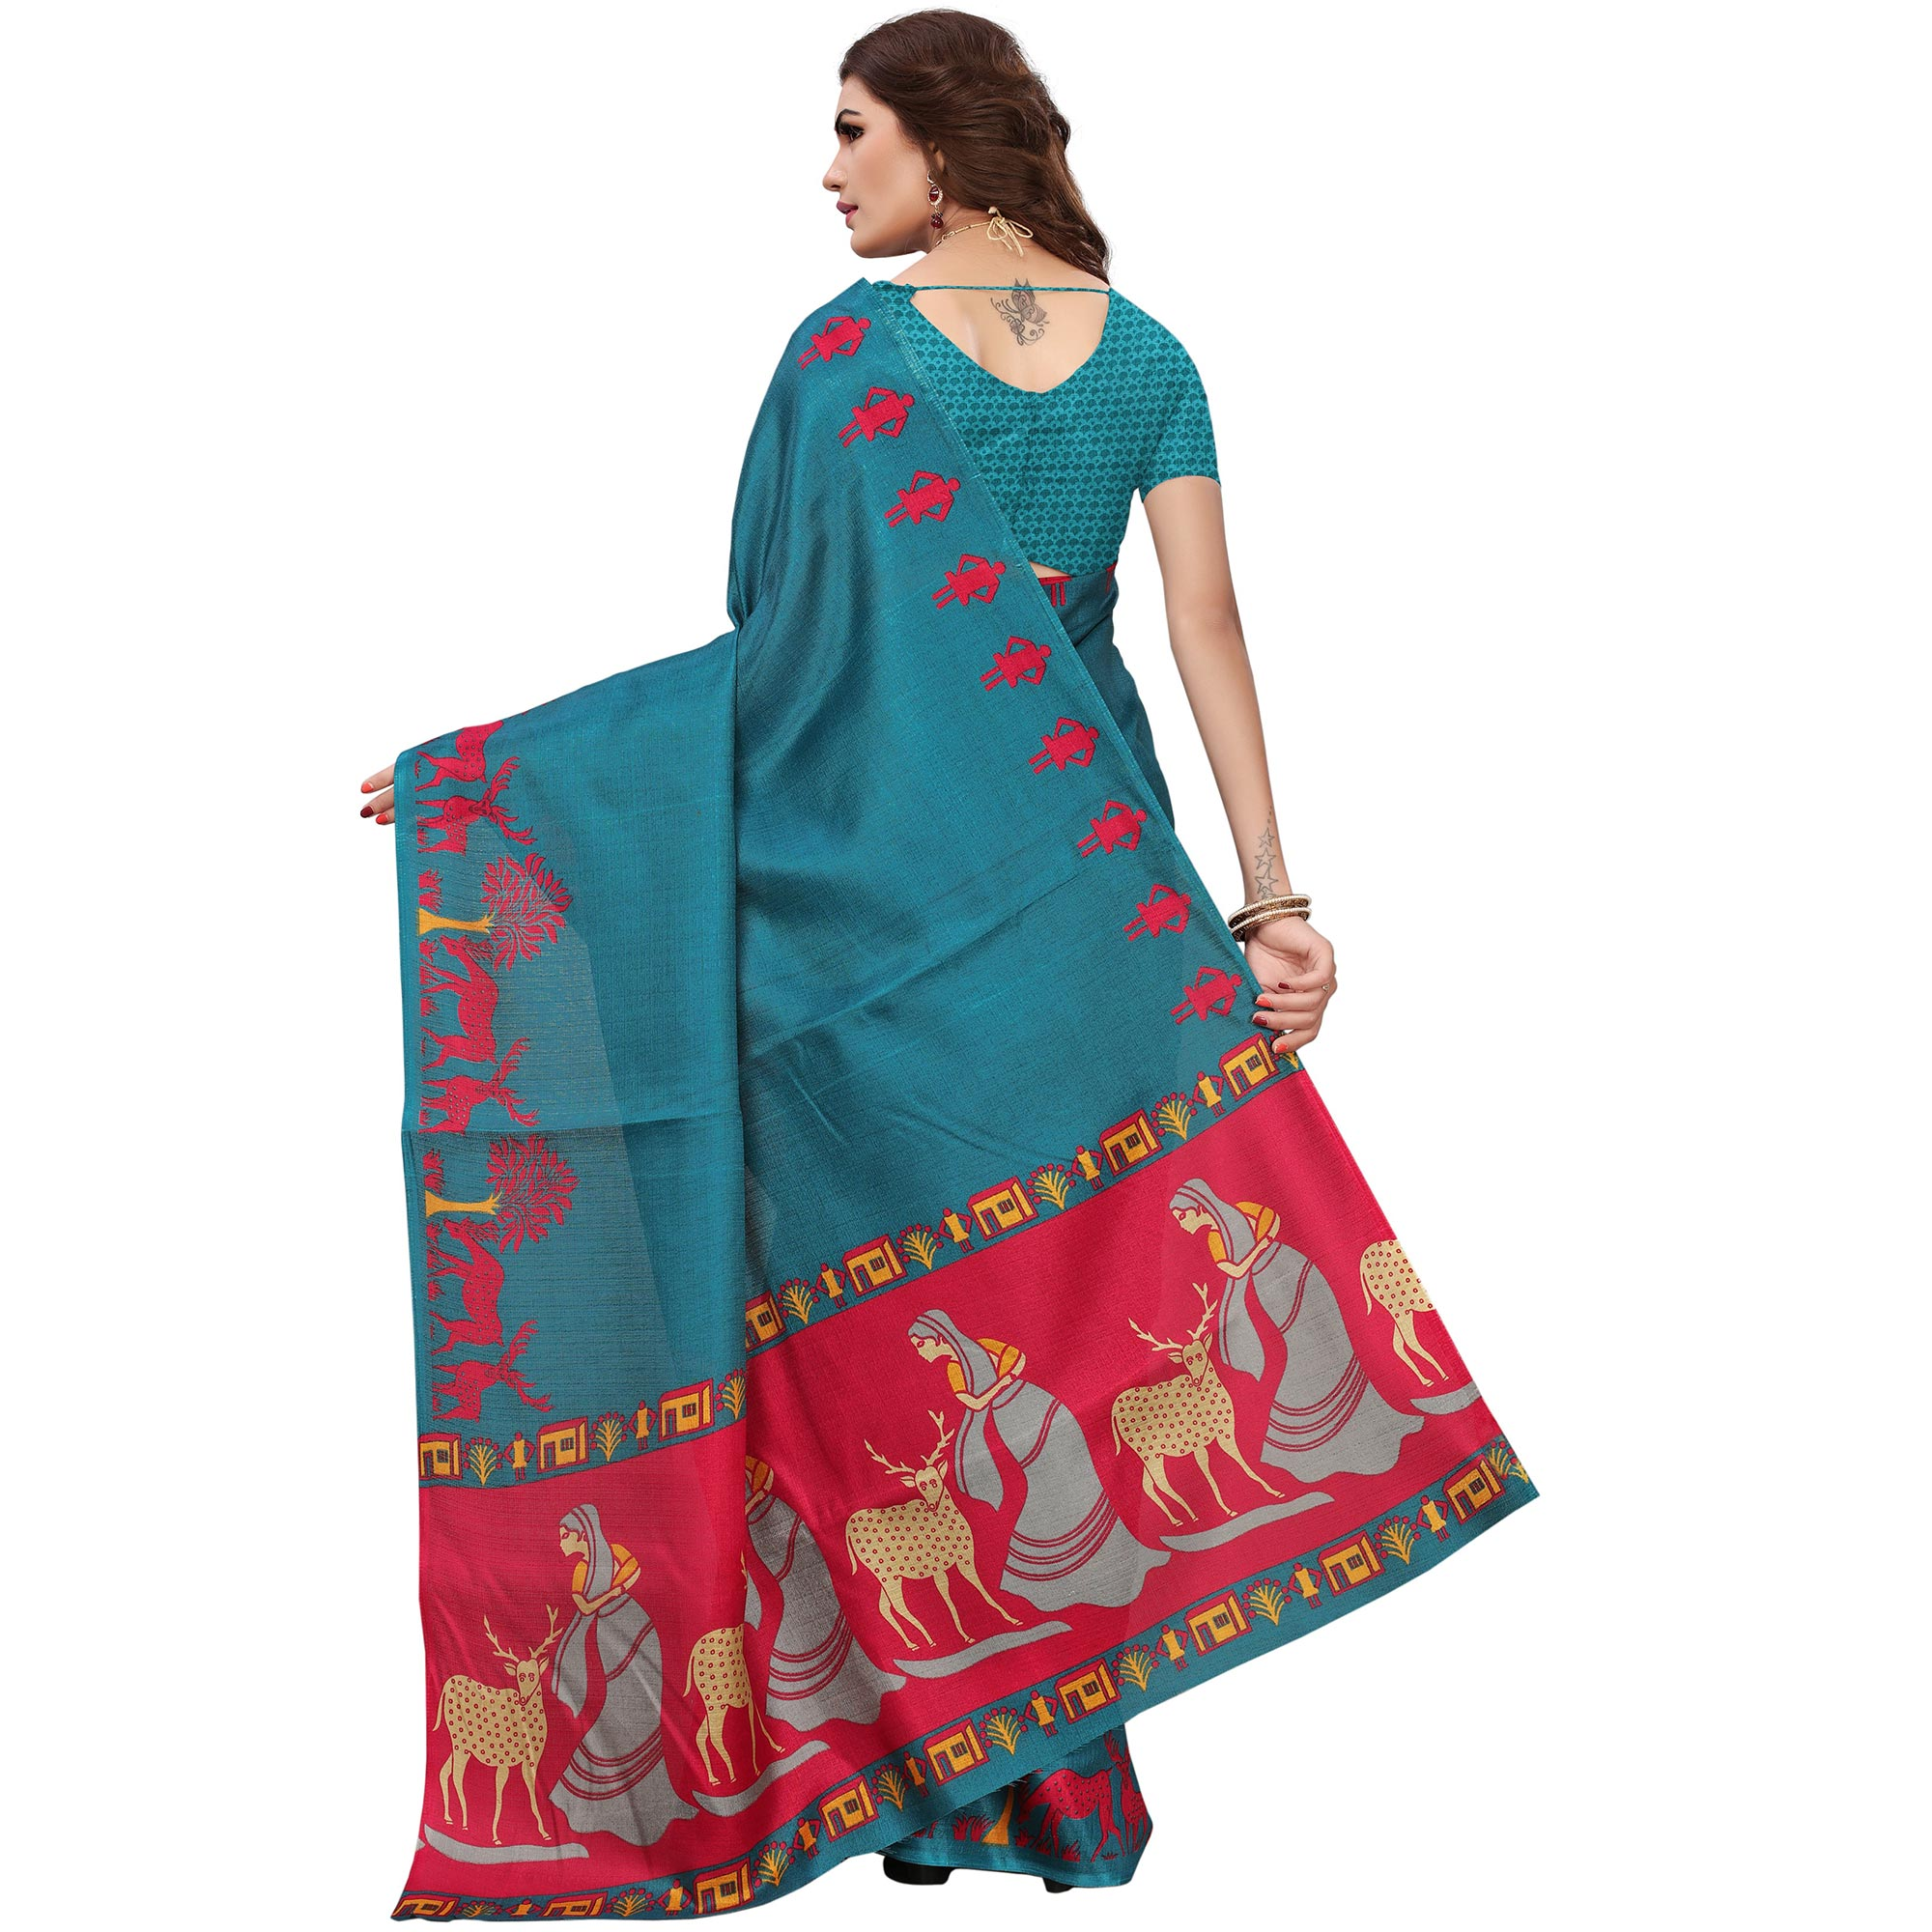 Glowing Teal Green Colored Printed Festive Wear Khadi Silk Saree